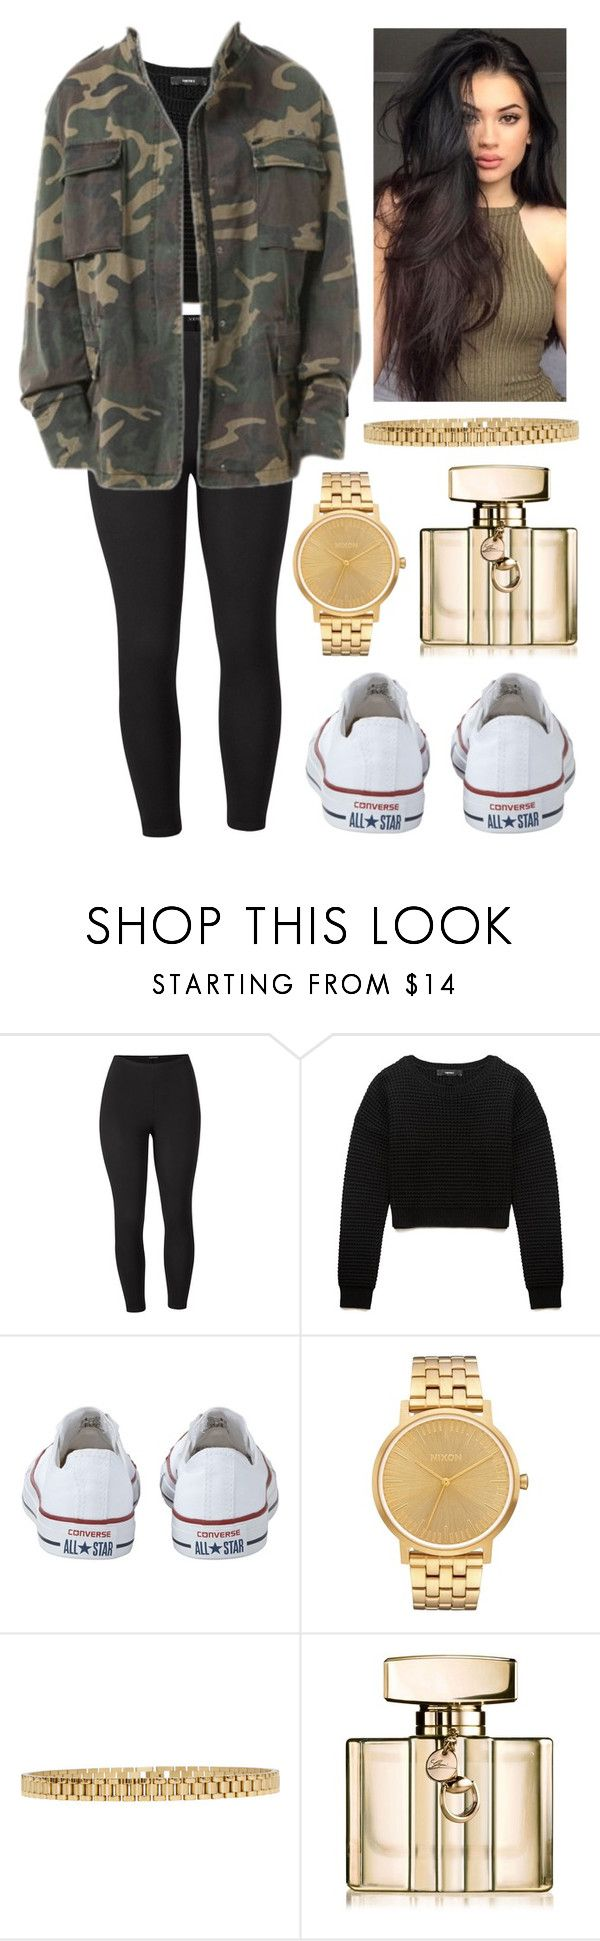 """629"" by francescas22 on Polyvore featuring Venus, Forever 21, Converse, Nixon, AMBUSH, Gucci and plus size clothing"